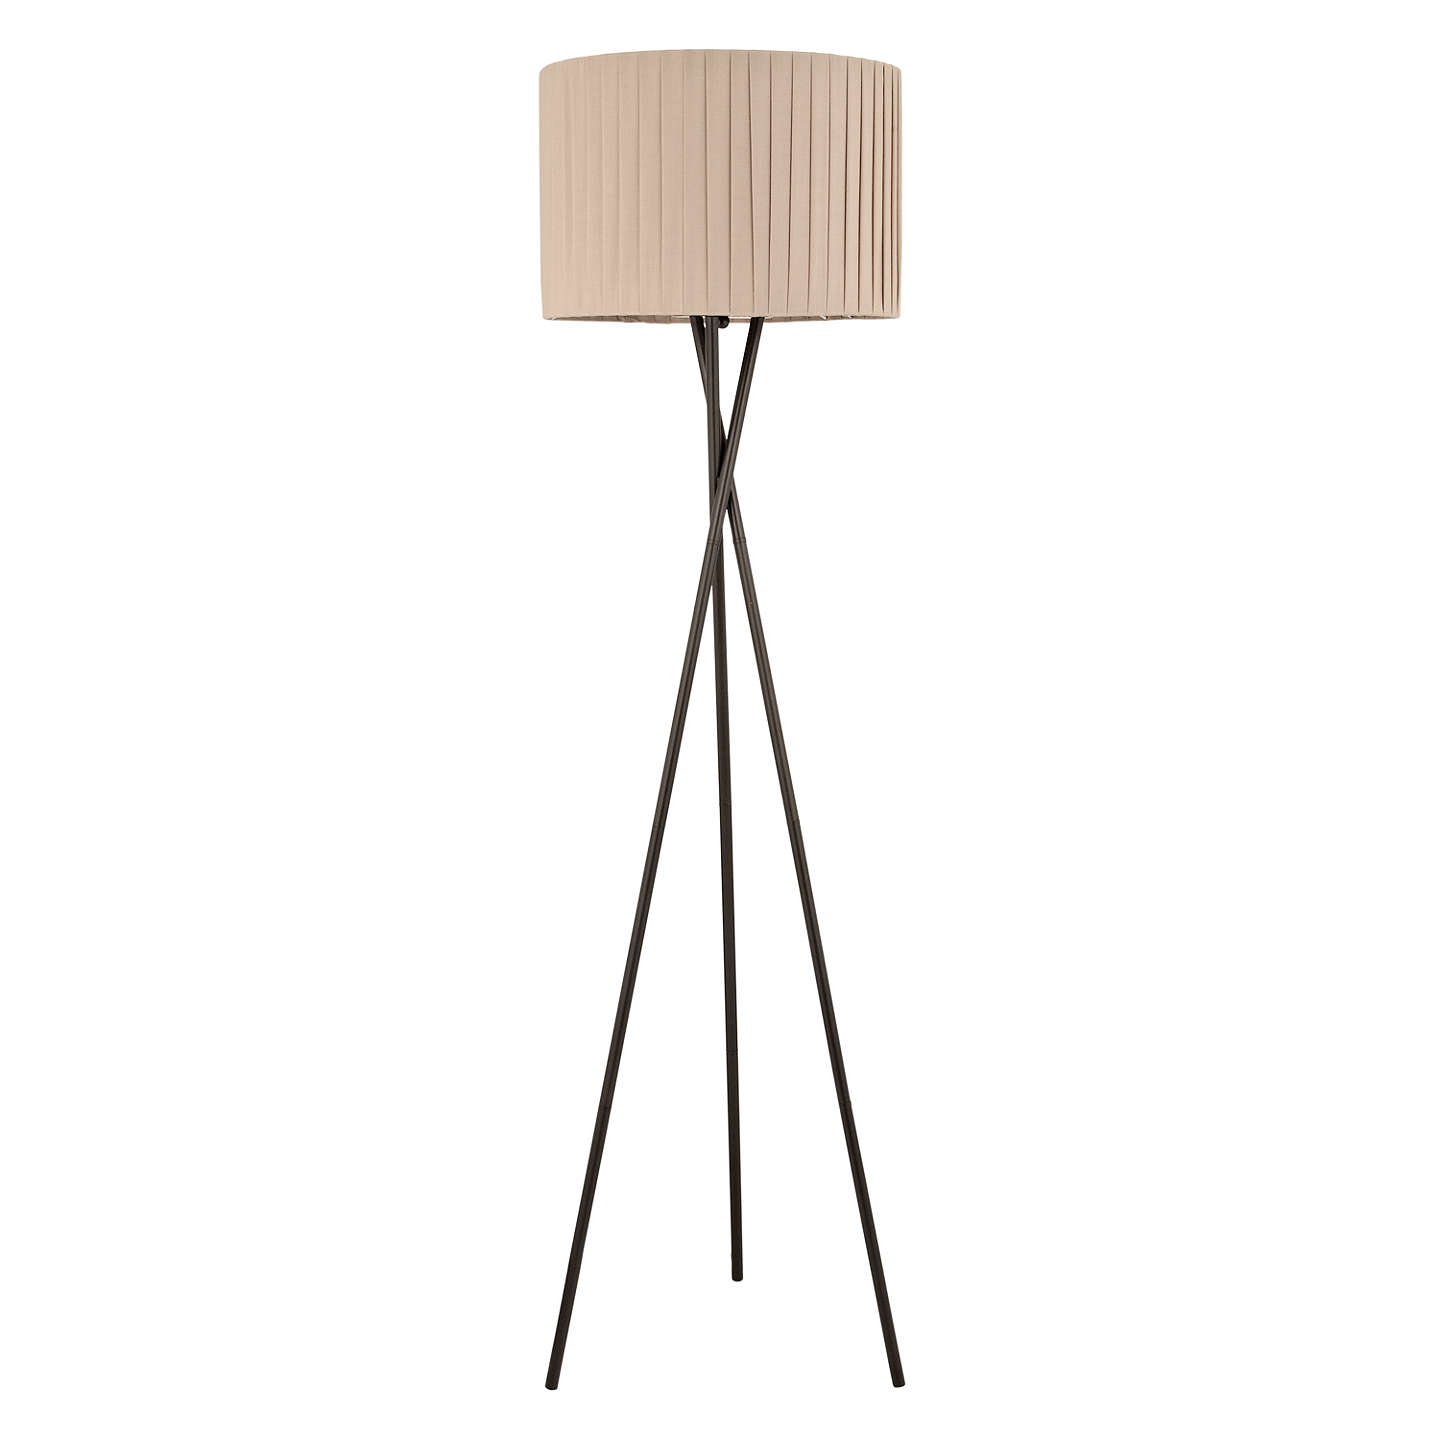 Offer john lewis malia floor lamp at john lewis buyjohn lewis malia floor lamp online at johnlewis mozeypictures Gallery